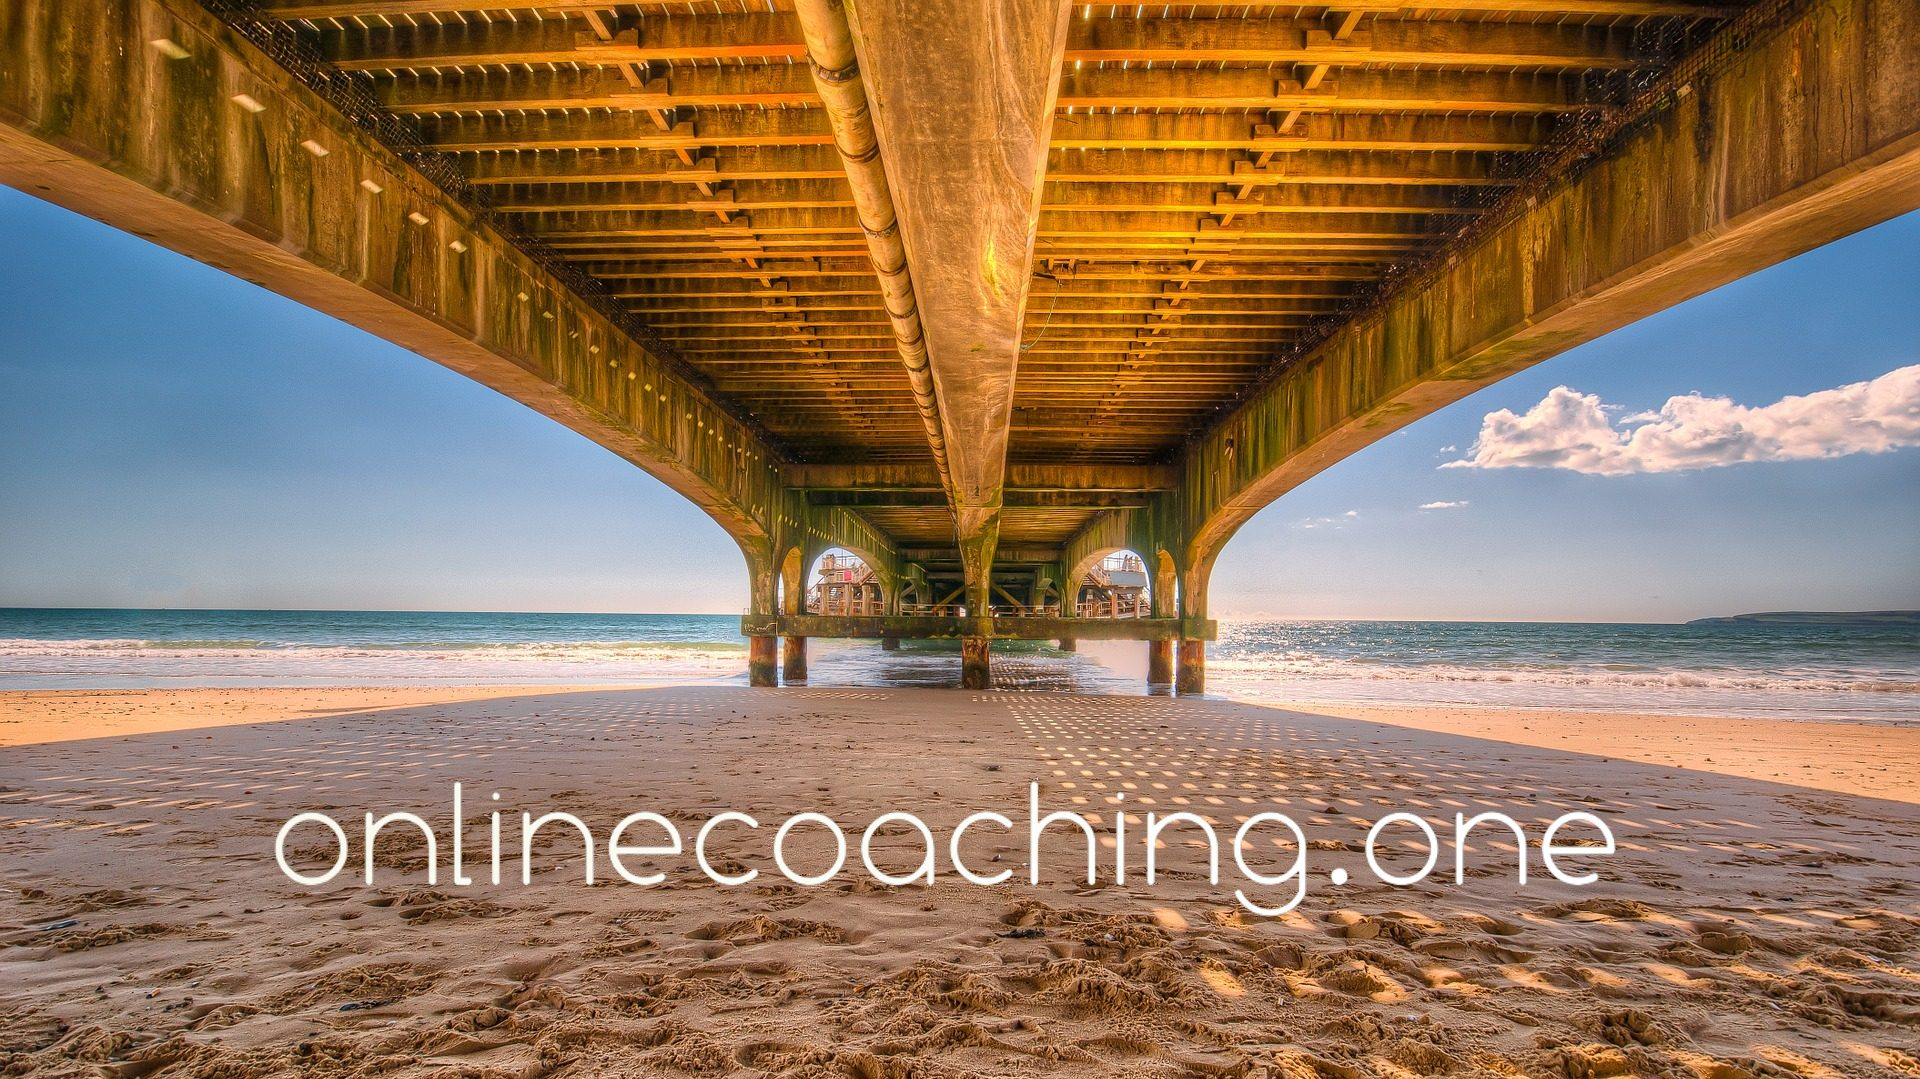 Online Coaching One